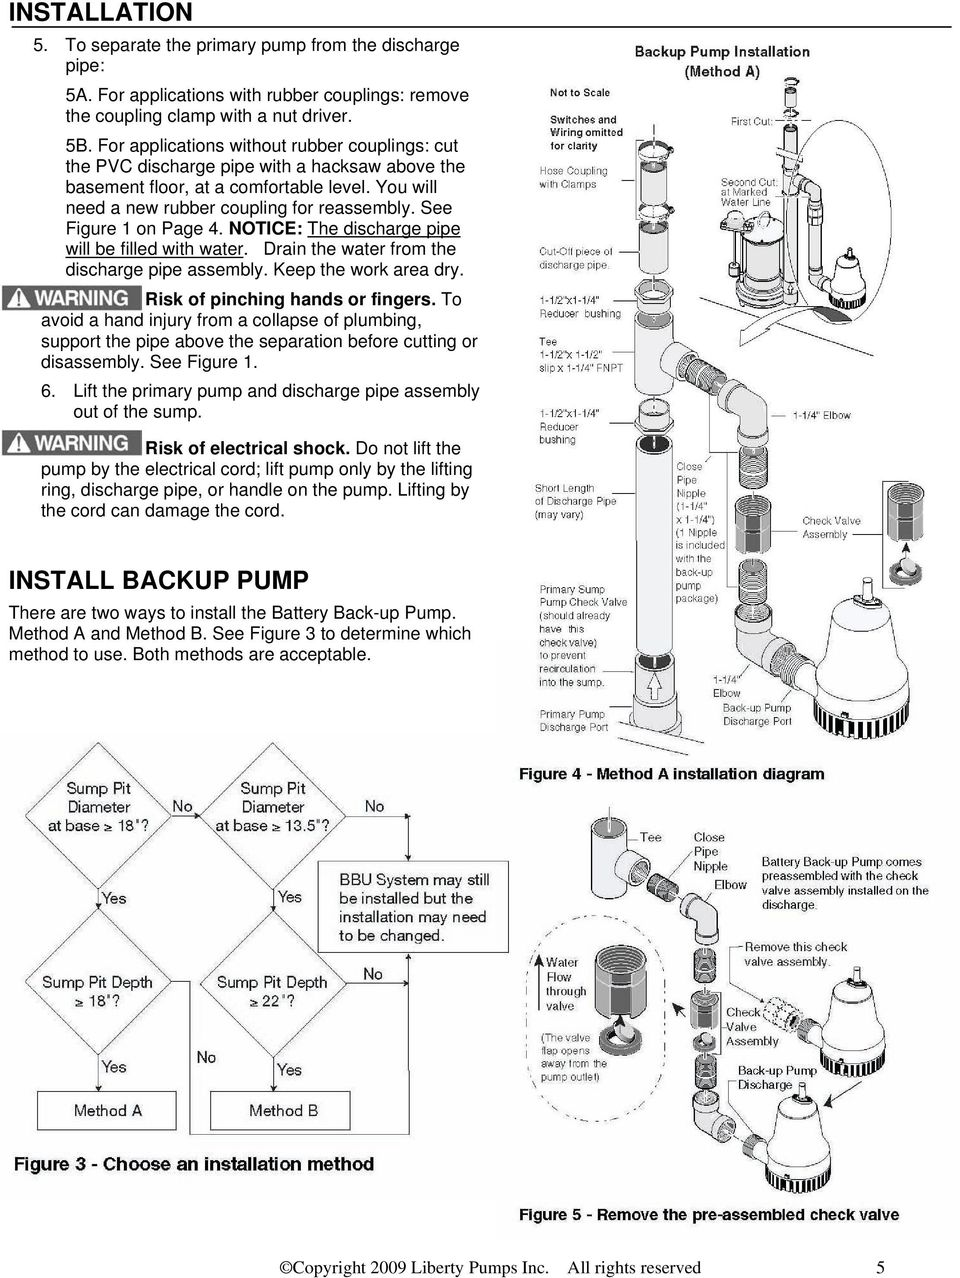 See Figure 1 on Page 4. NOTICE: The discharge pipe will be filled with water. Drain the water from the discharge pipe assembly. Keep the work area dry. Risk of pinching hands or fingers.